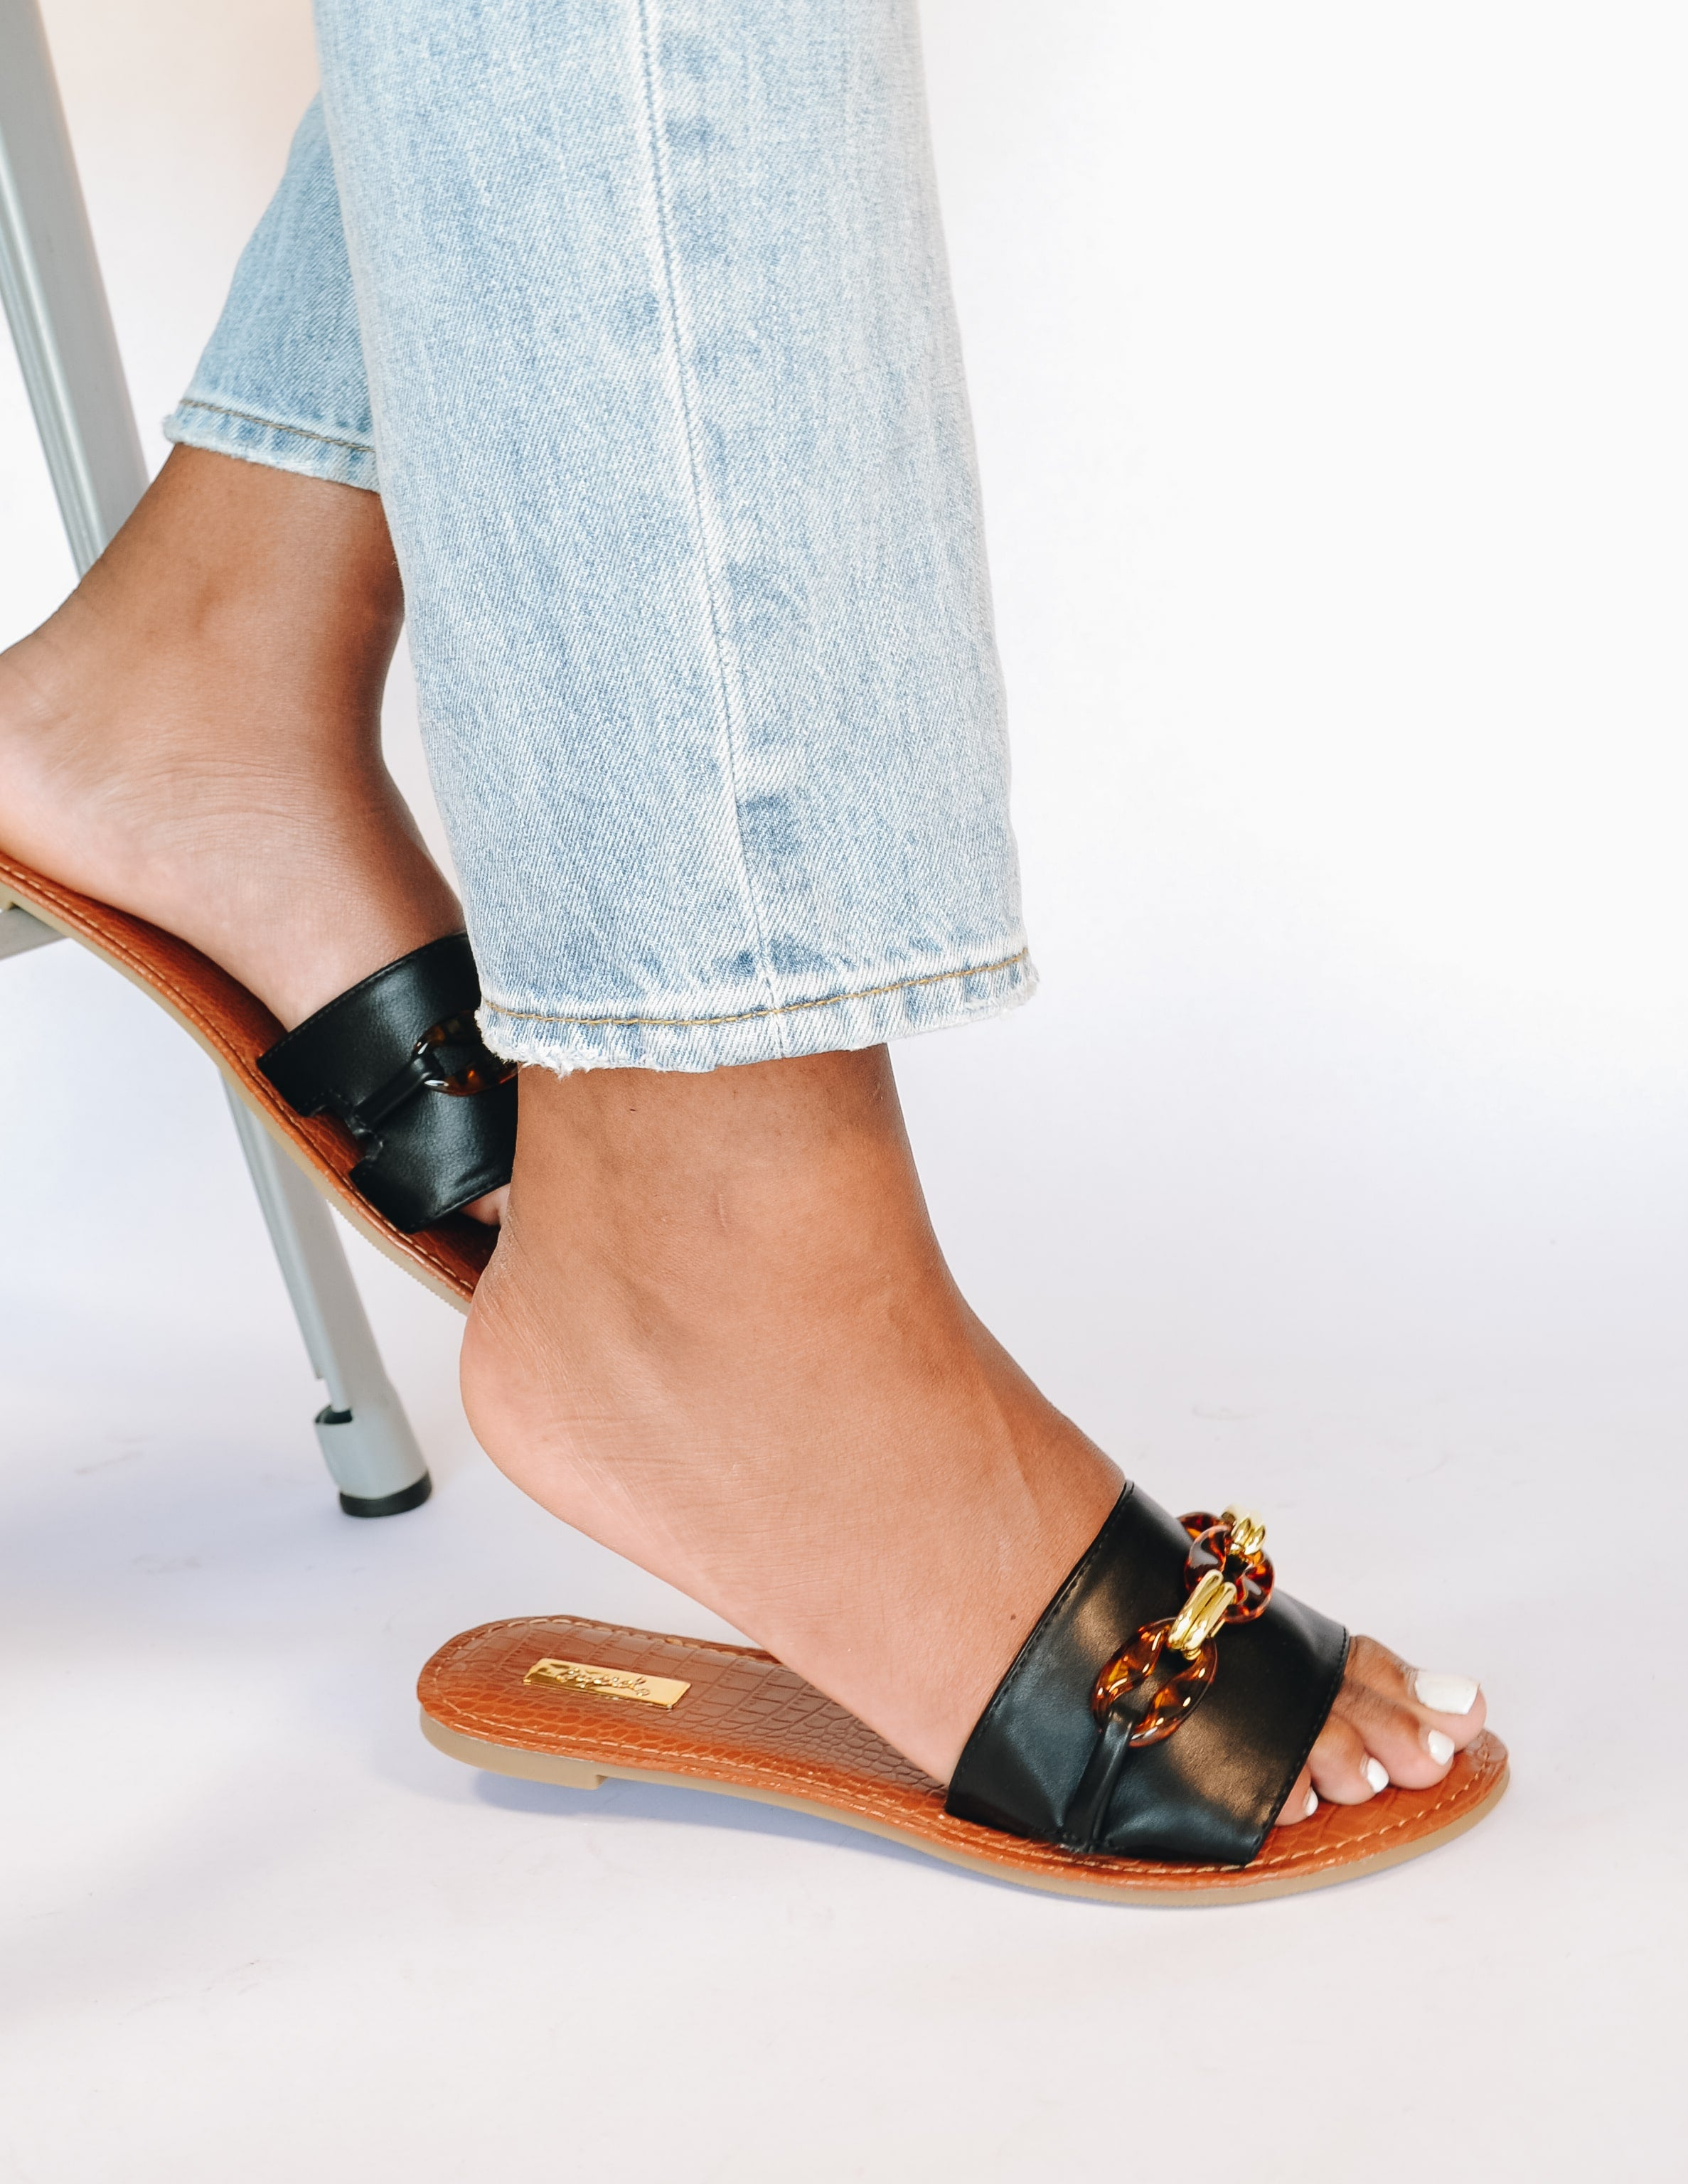 Model sitting in black tortoise shell buckle slide sandals and denim